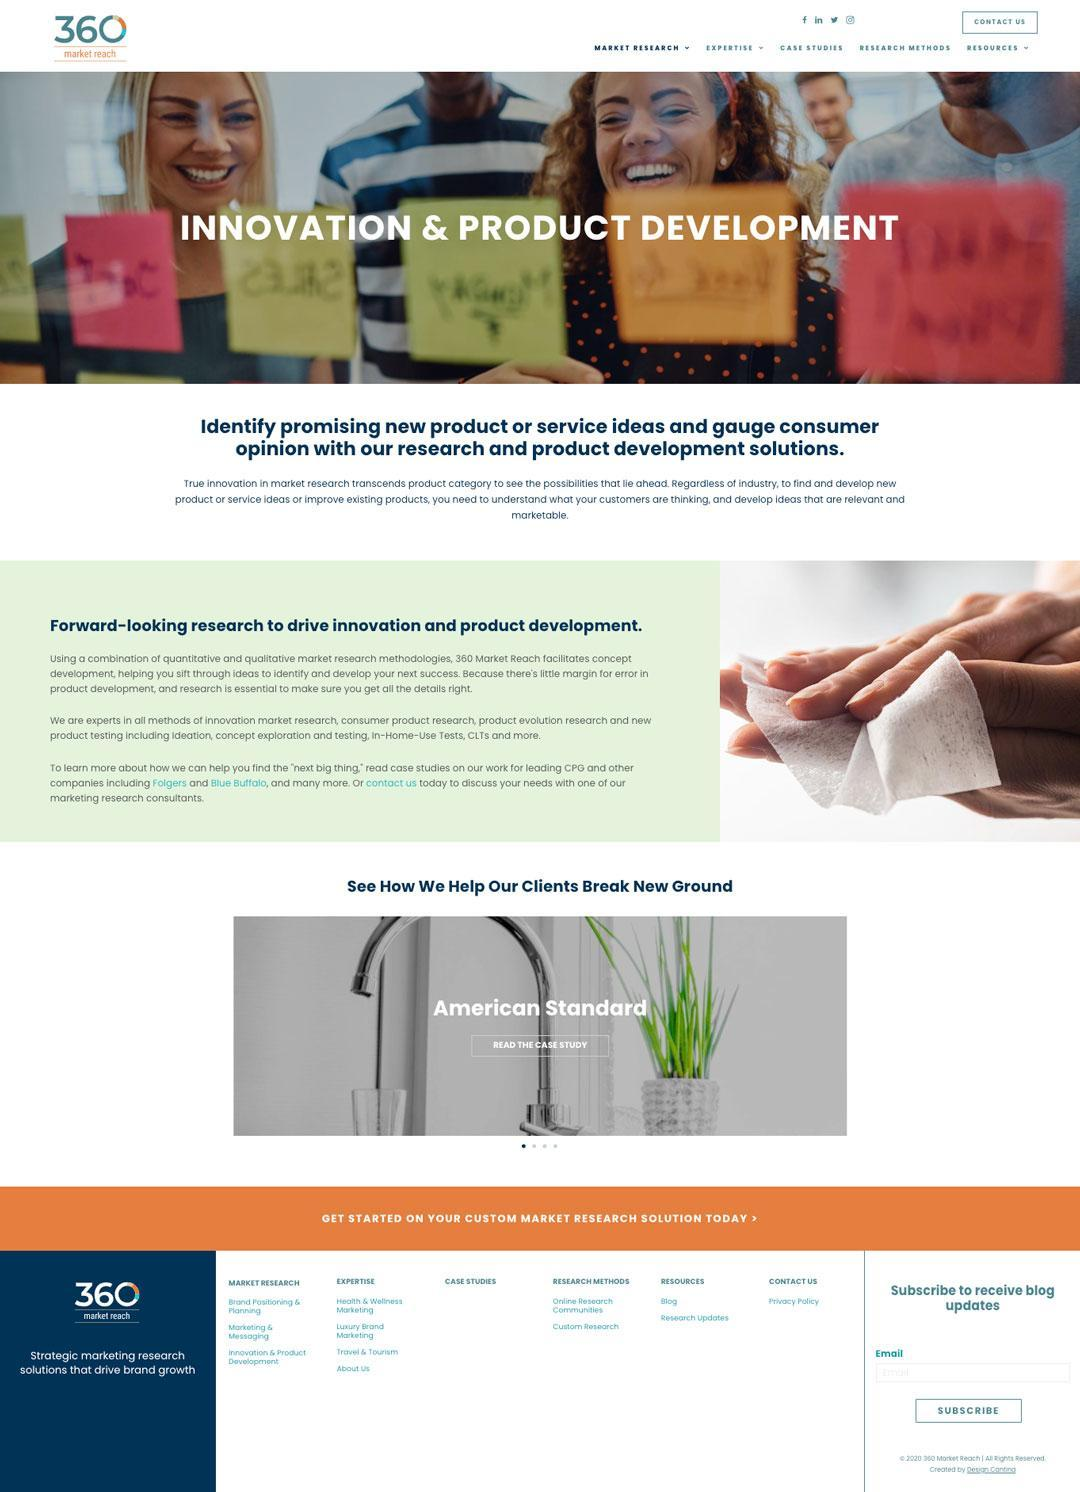 360-market-reach-website-innovation-page